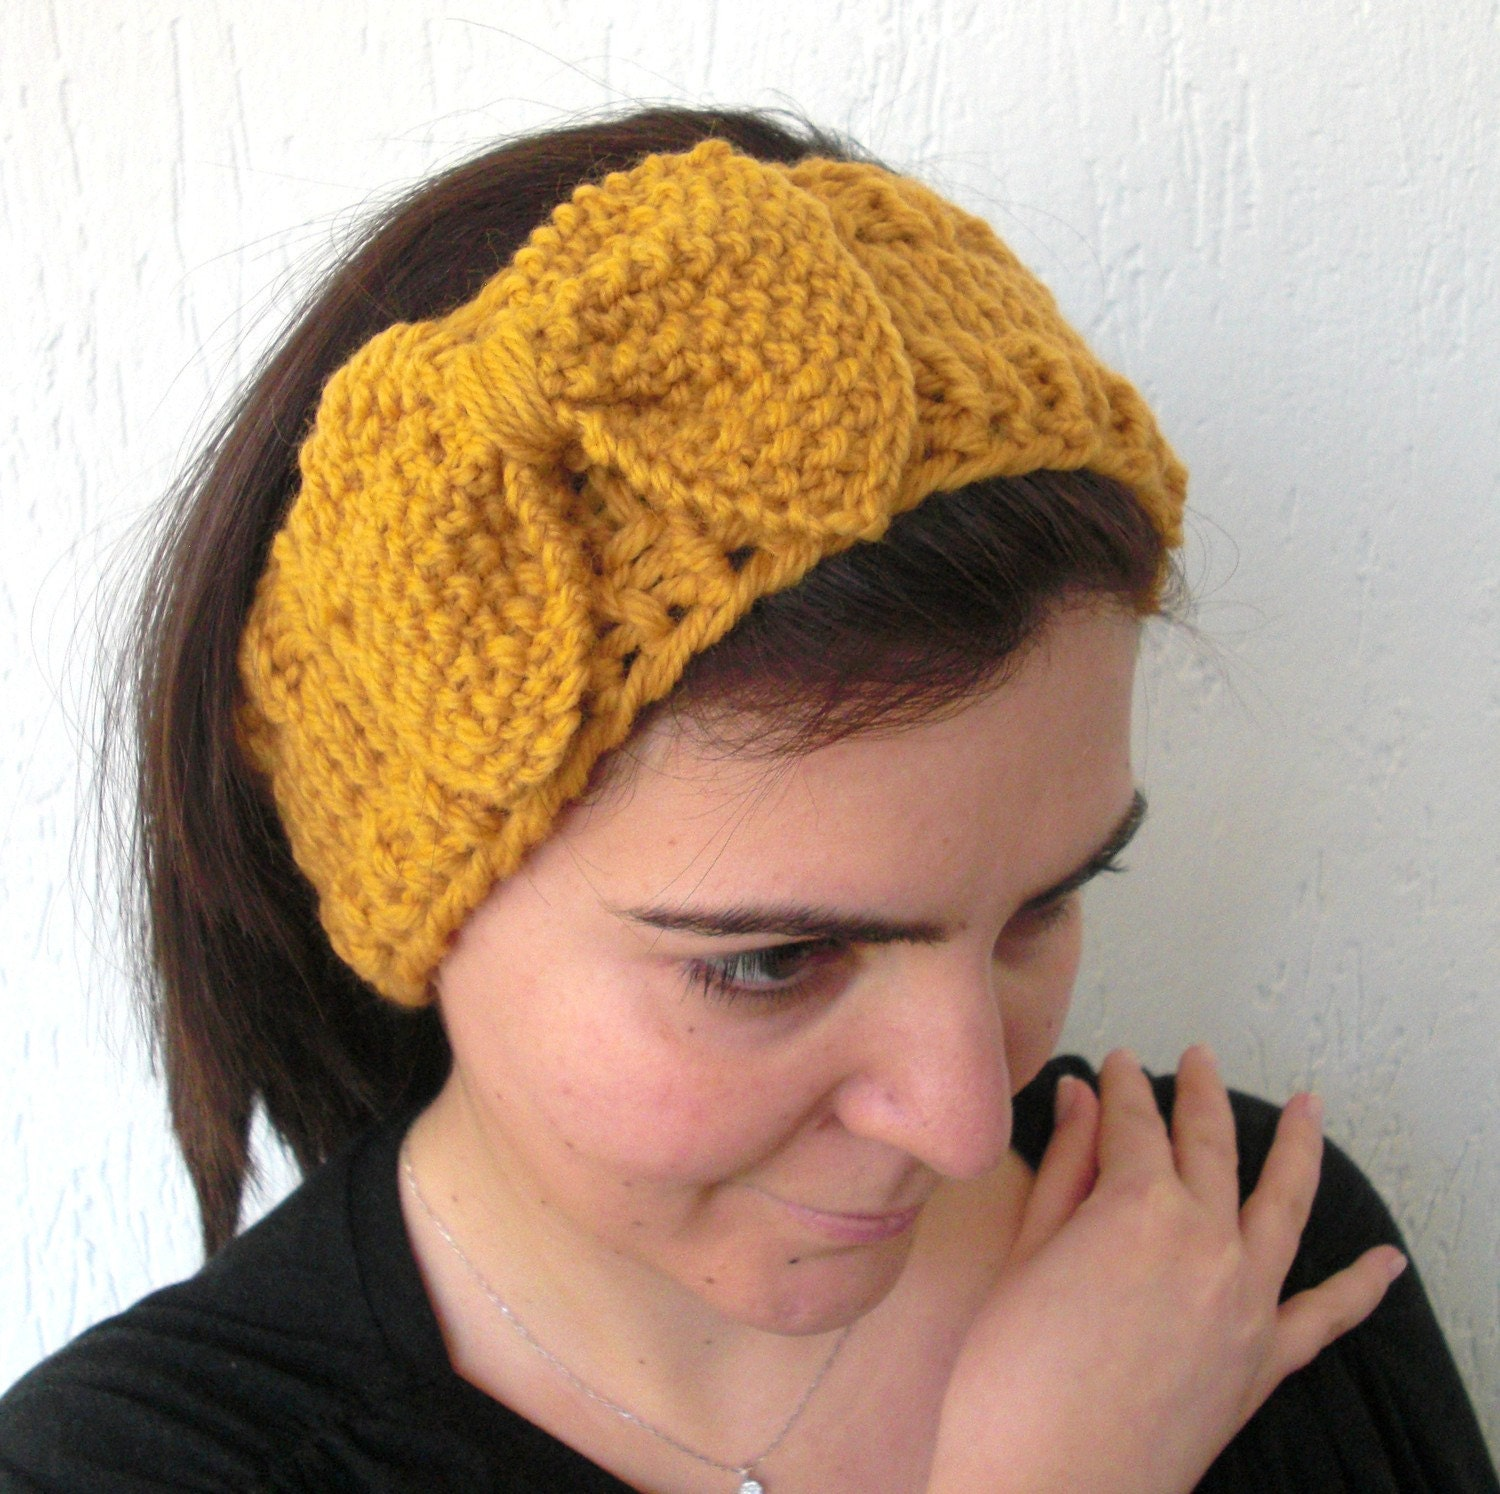 Knitting  PATTERN  PDF  Easy Headband  With Bow  DIY by Ebruk